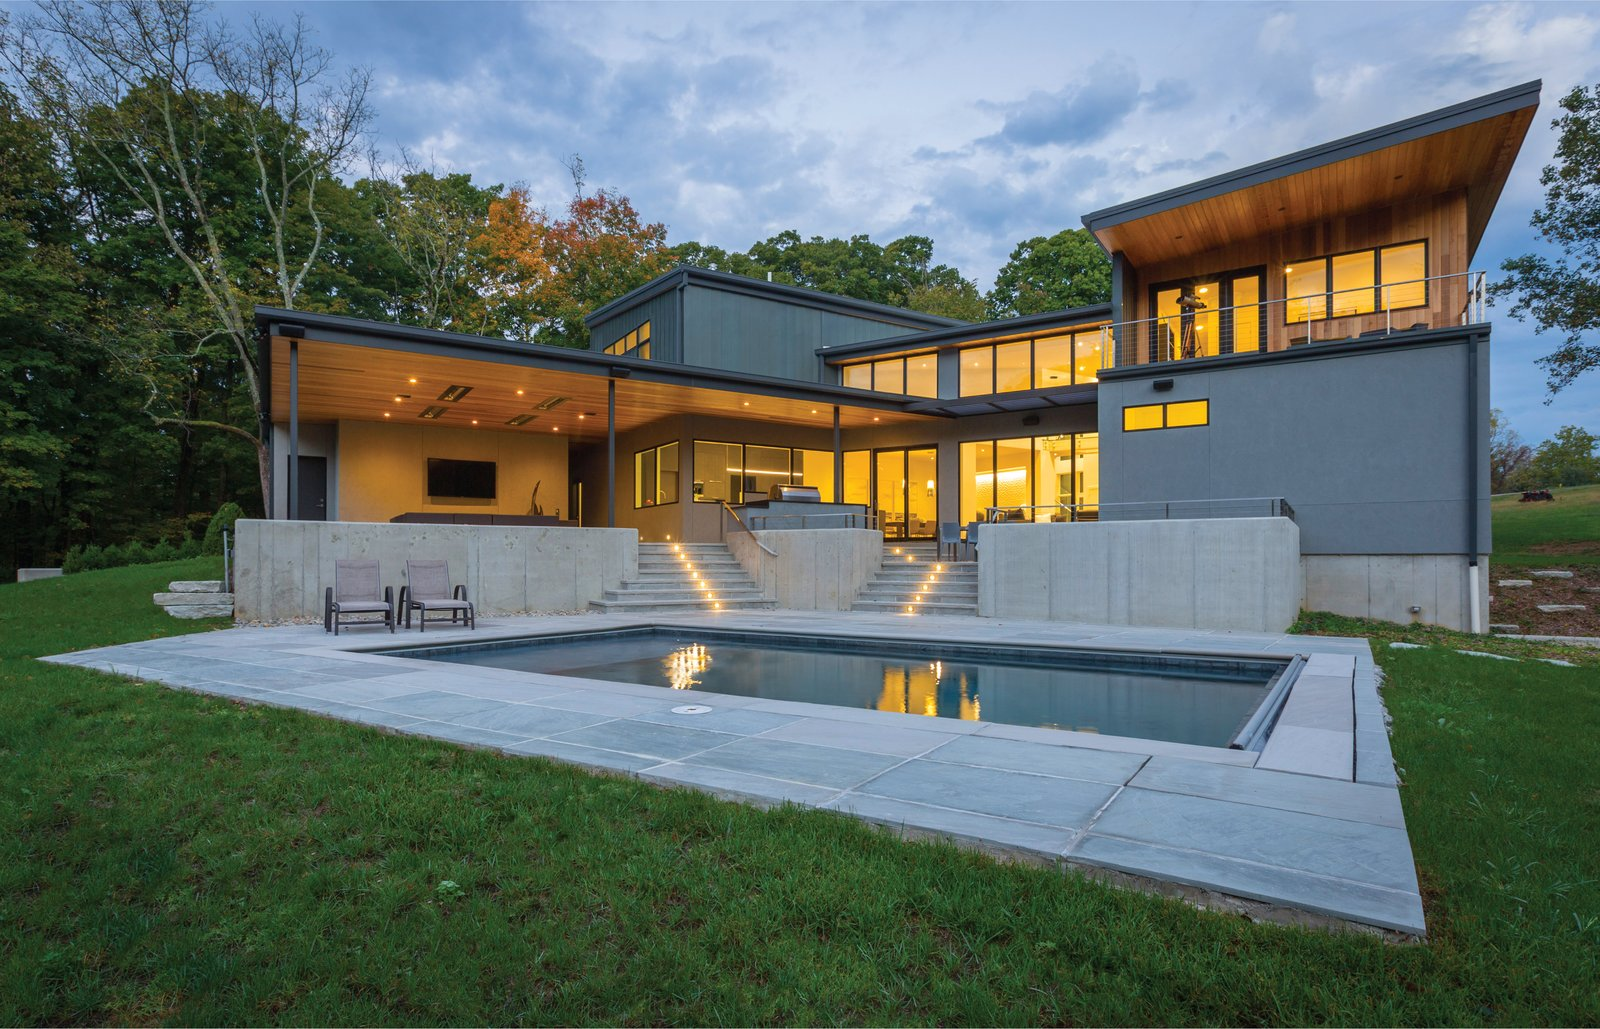 Indian Hill Residence Modern Home In Cincinnati Ohio By Platte On Dwell